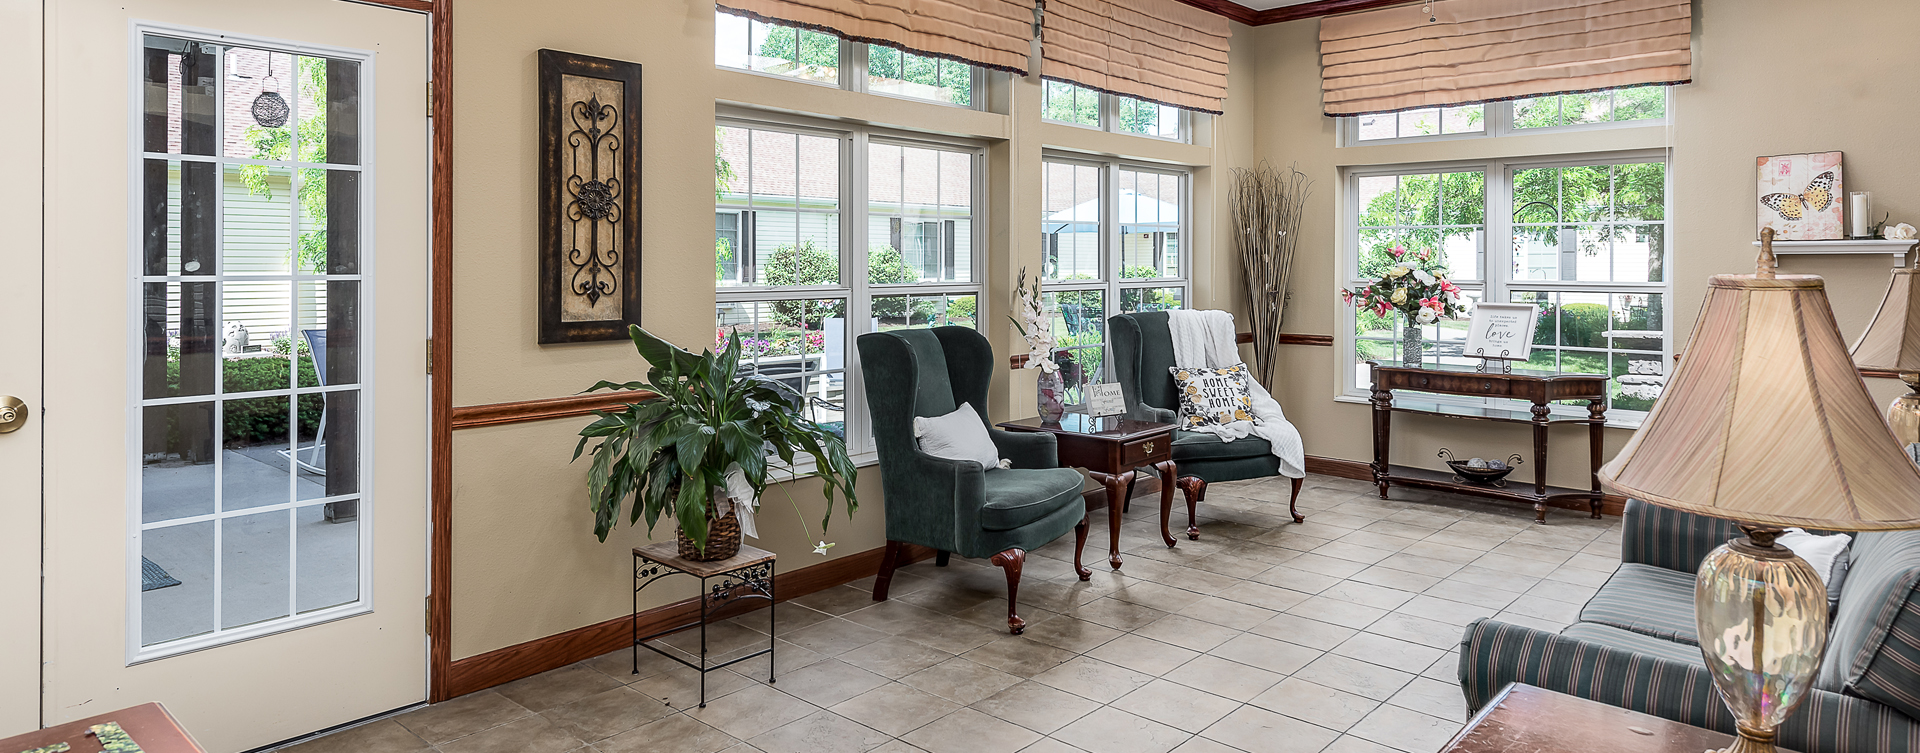 Curl up with a good book in the sunroom at Bickford of Midland